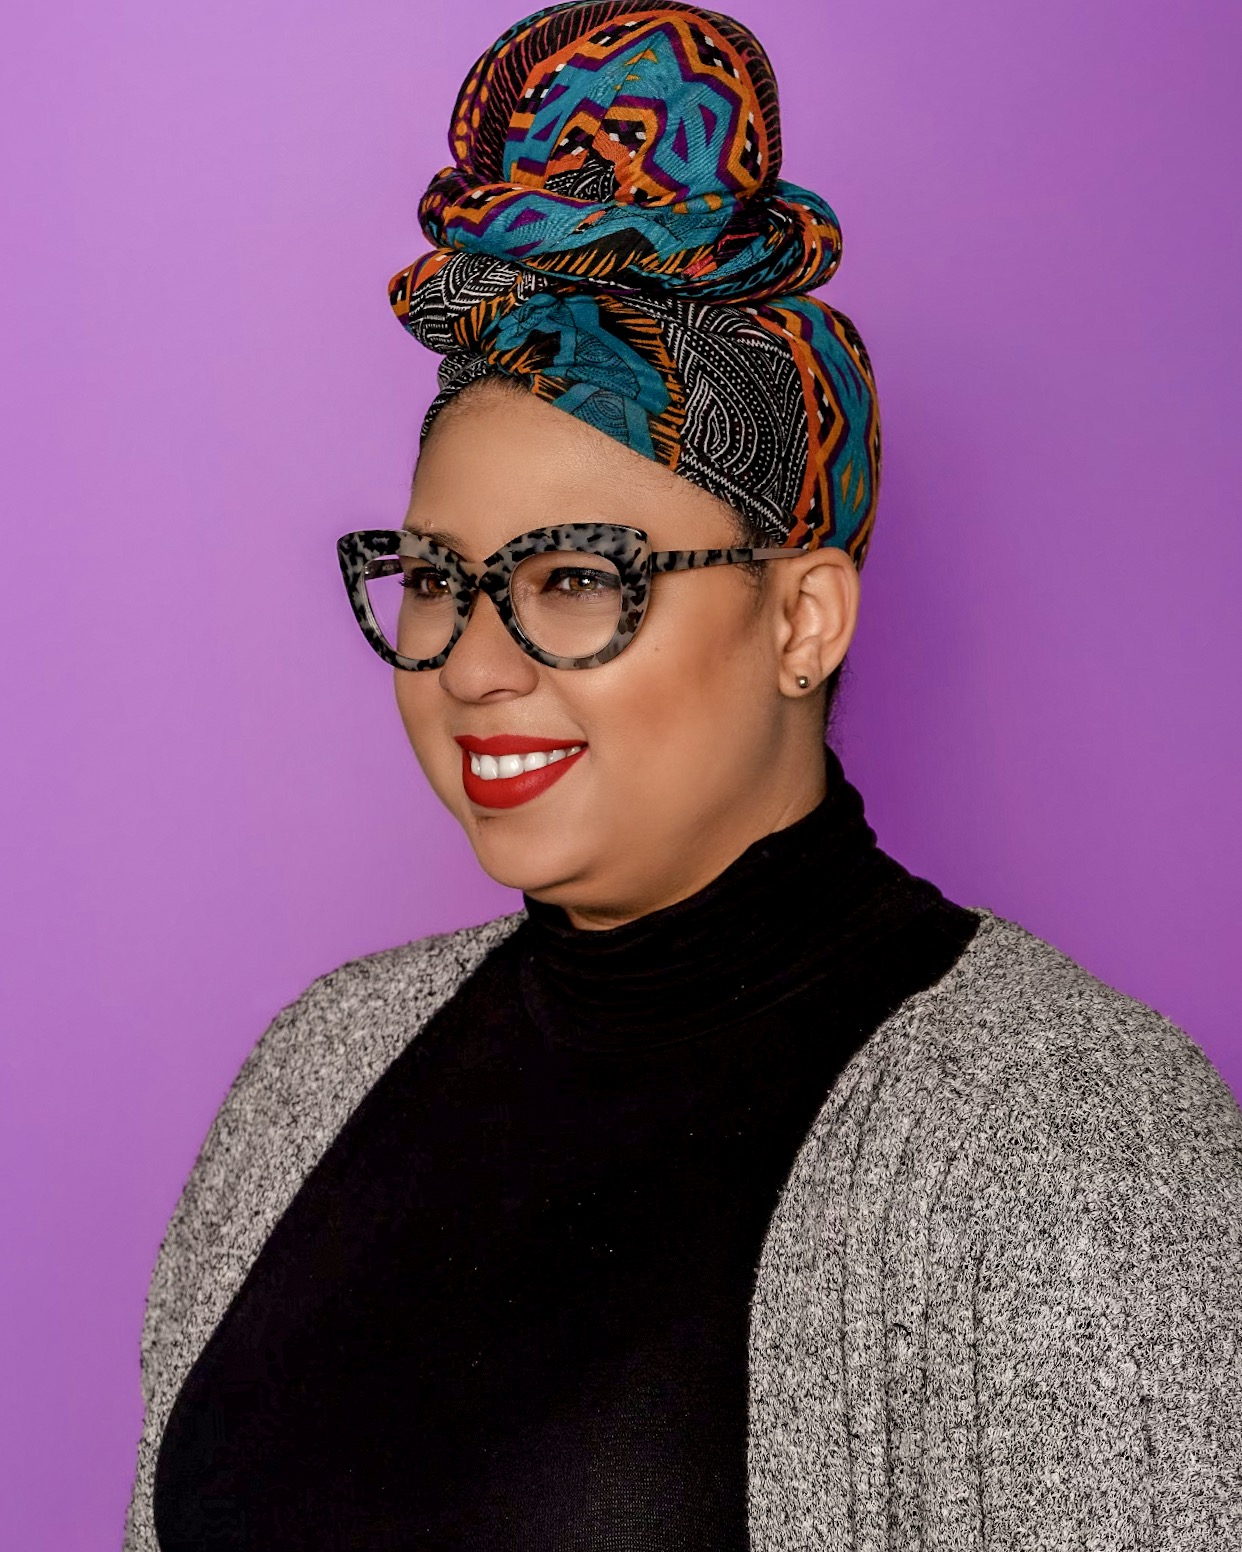 """ALYSHA JANUARY - Blogger at DiscoverCharmCity.comLanding in Baltimore over eight years ago, Alysha January or as most know her, Discover Charm City, has been deep-diving into Baltimore's food, fashion and event scene and highlighting all the things that make this city amazing. """"I just want to help people feel connected to the place they choose to work, live, and play"""". Although not from Baltimore, Alysha credits the city as being the guided hand that has helped develop herself and her business, """"Baltimore has been instrumental in my growth. I don't think I would have been able to flourish the way that I have organically in any other city than Baltimore. Baltimore is such a special place"""". As an influencer and blogger, it is important to Alysha to ensure that she uses her platform to uplift local black artists and businesses, """"I love bragging about my people and all the cool things that black creatives are doing around the city-black excellence is real in Baltimore""""."""